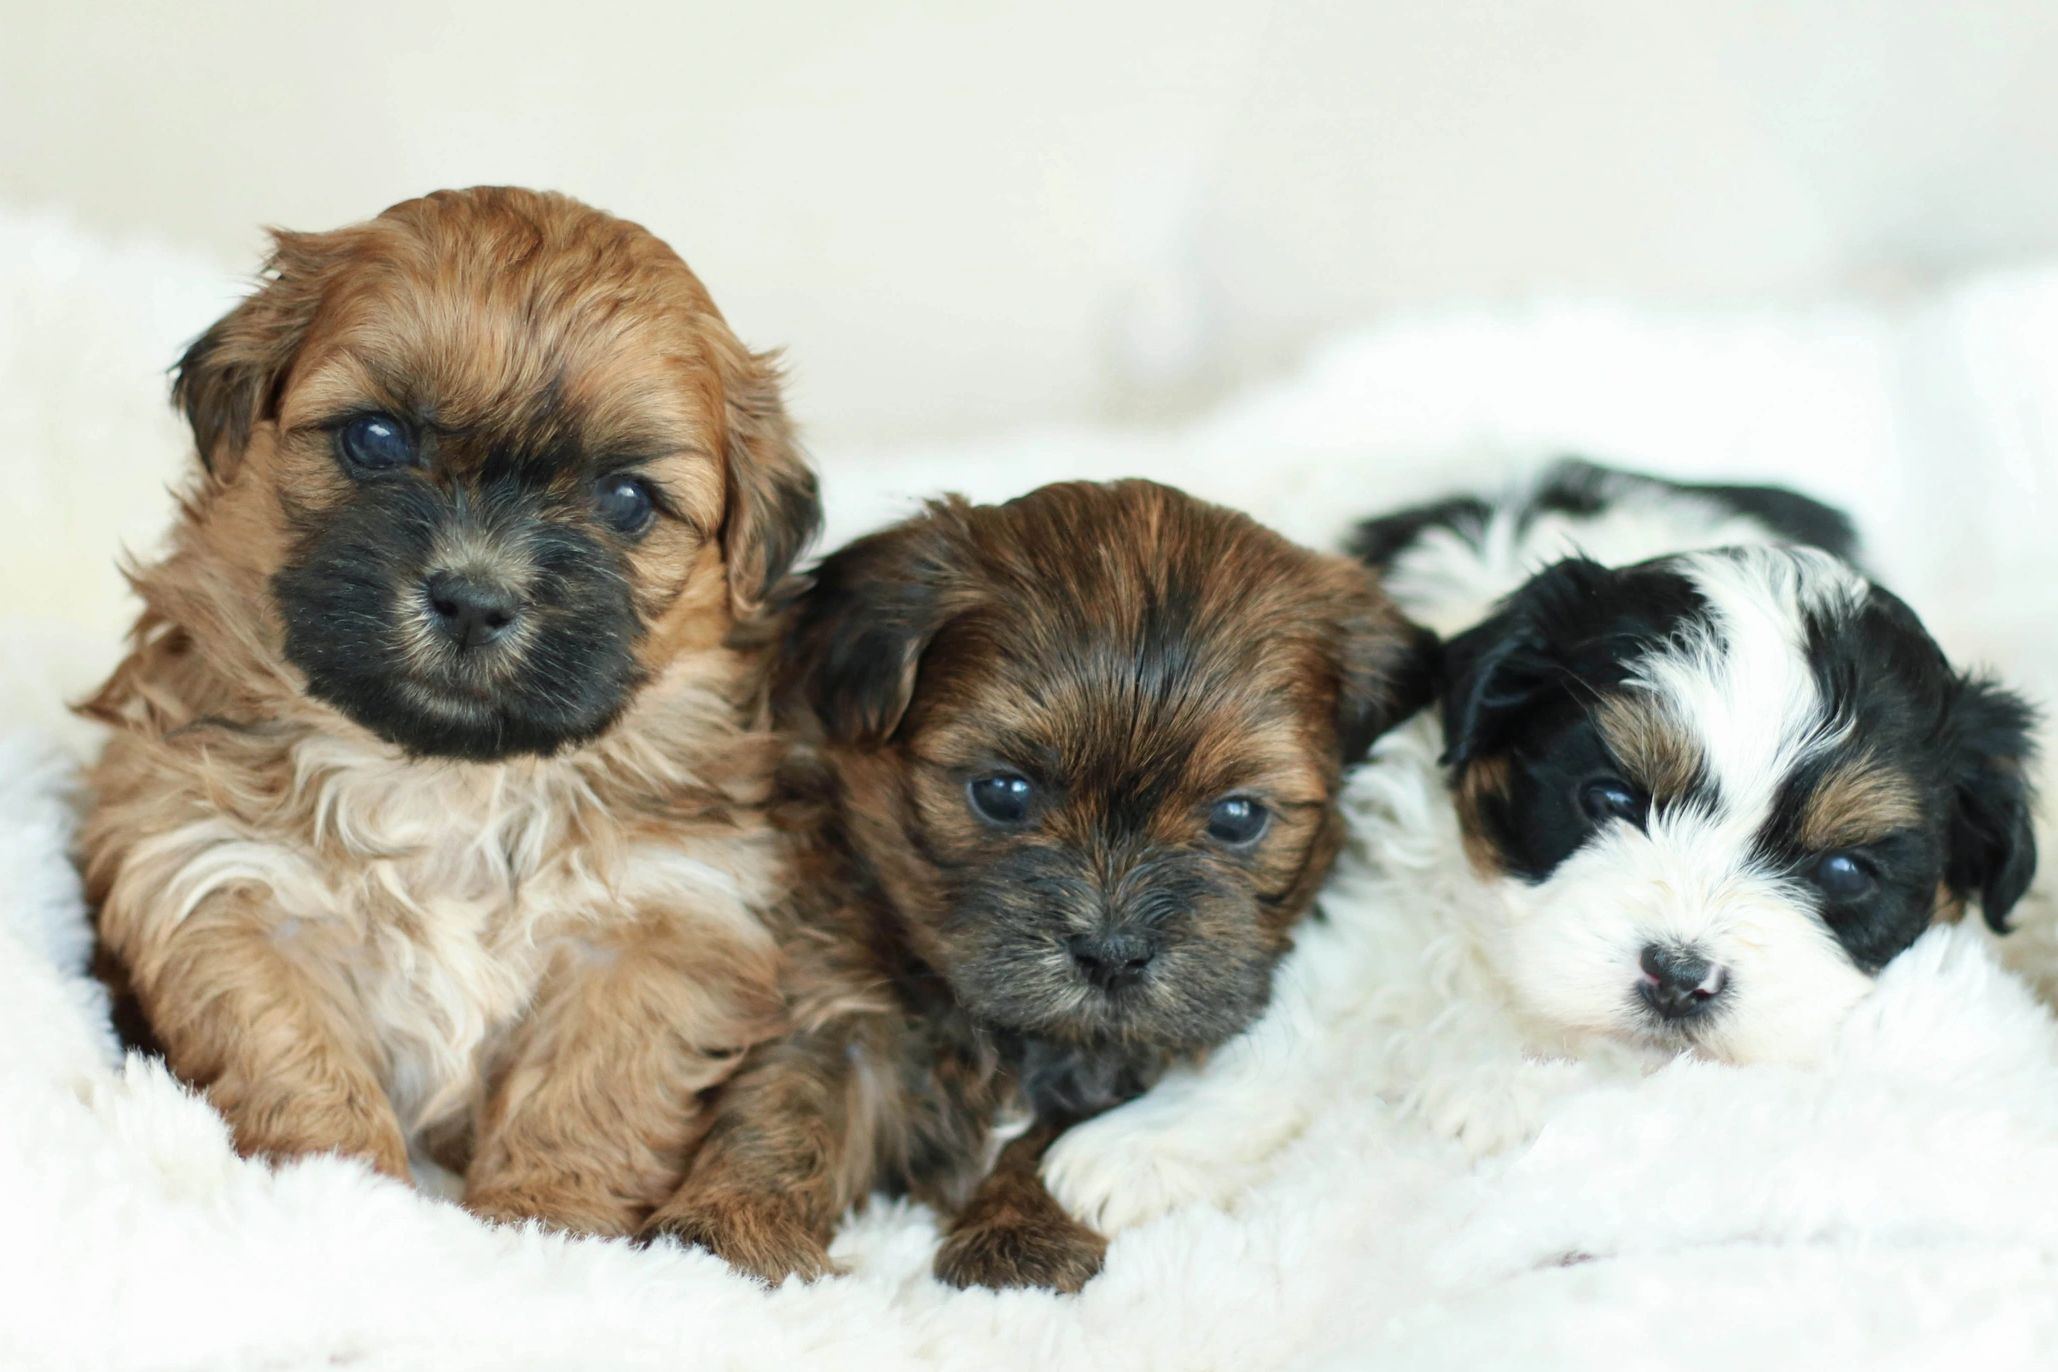 Shichon puppies for sale, Shichon puppies, Shihpoo puppies, teddy bear puppies, poodle mix, shichon